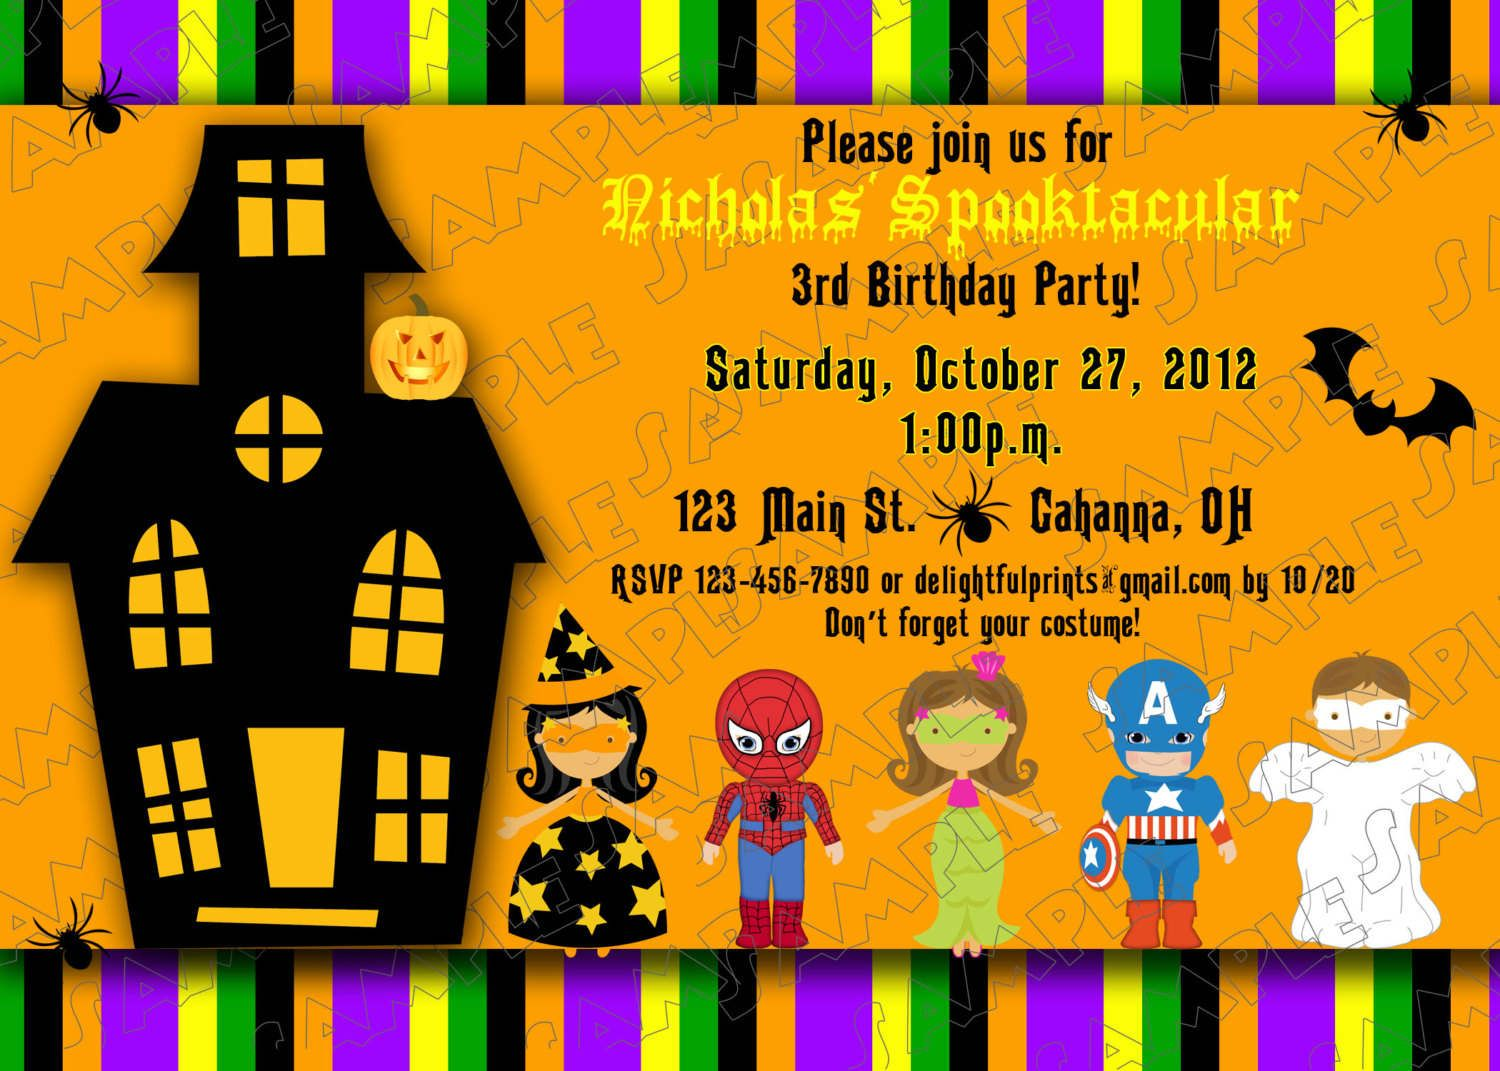 halloween kids birthday party invitations – Free Birthday Party Invitations for Kids